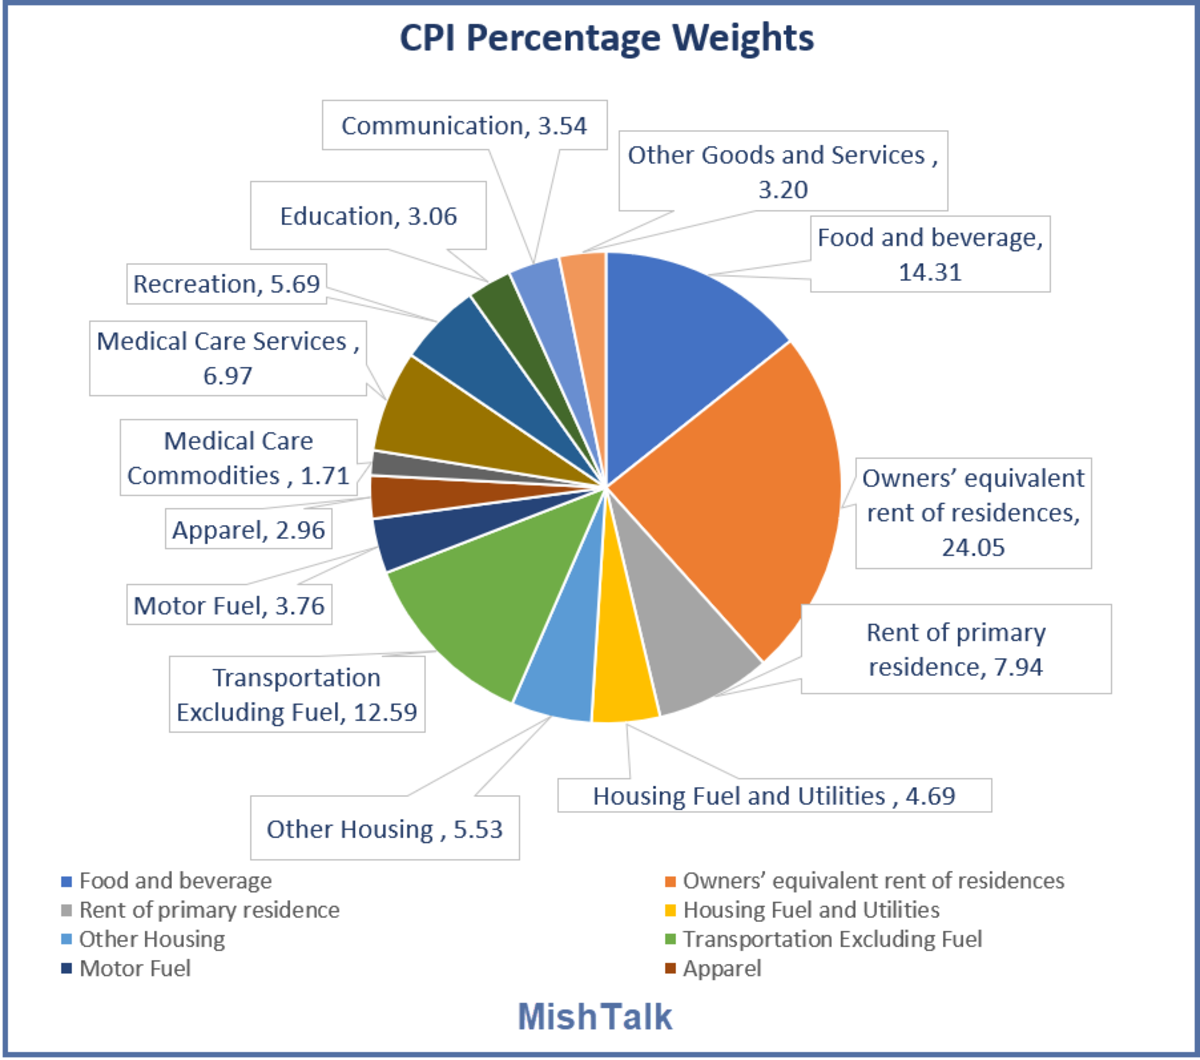 CPI Percentage Weights2